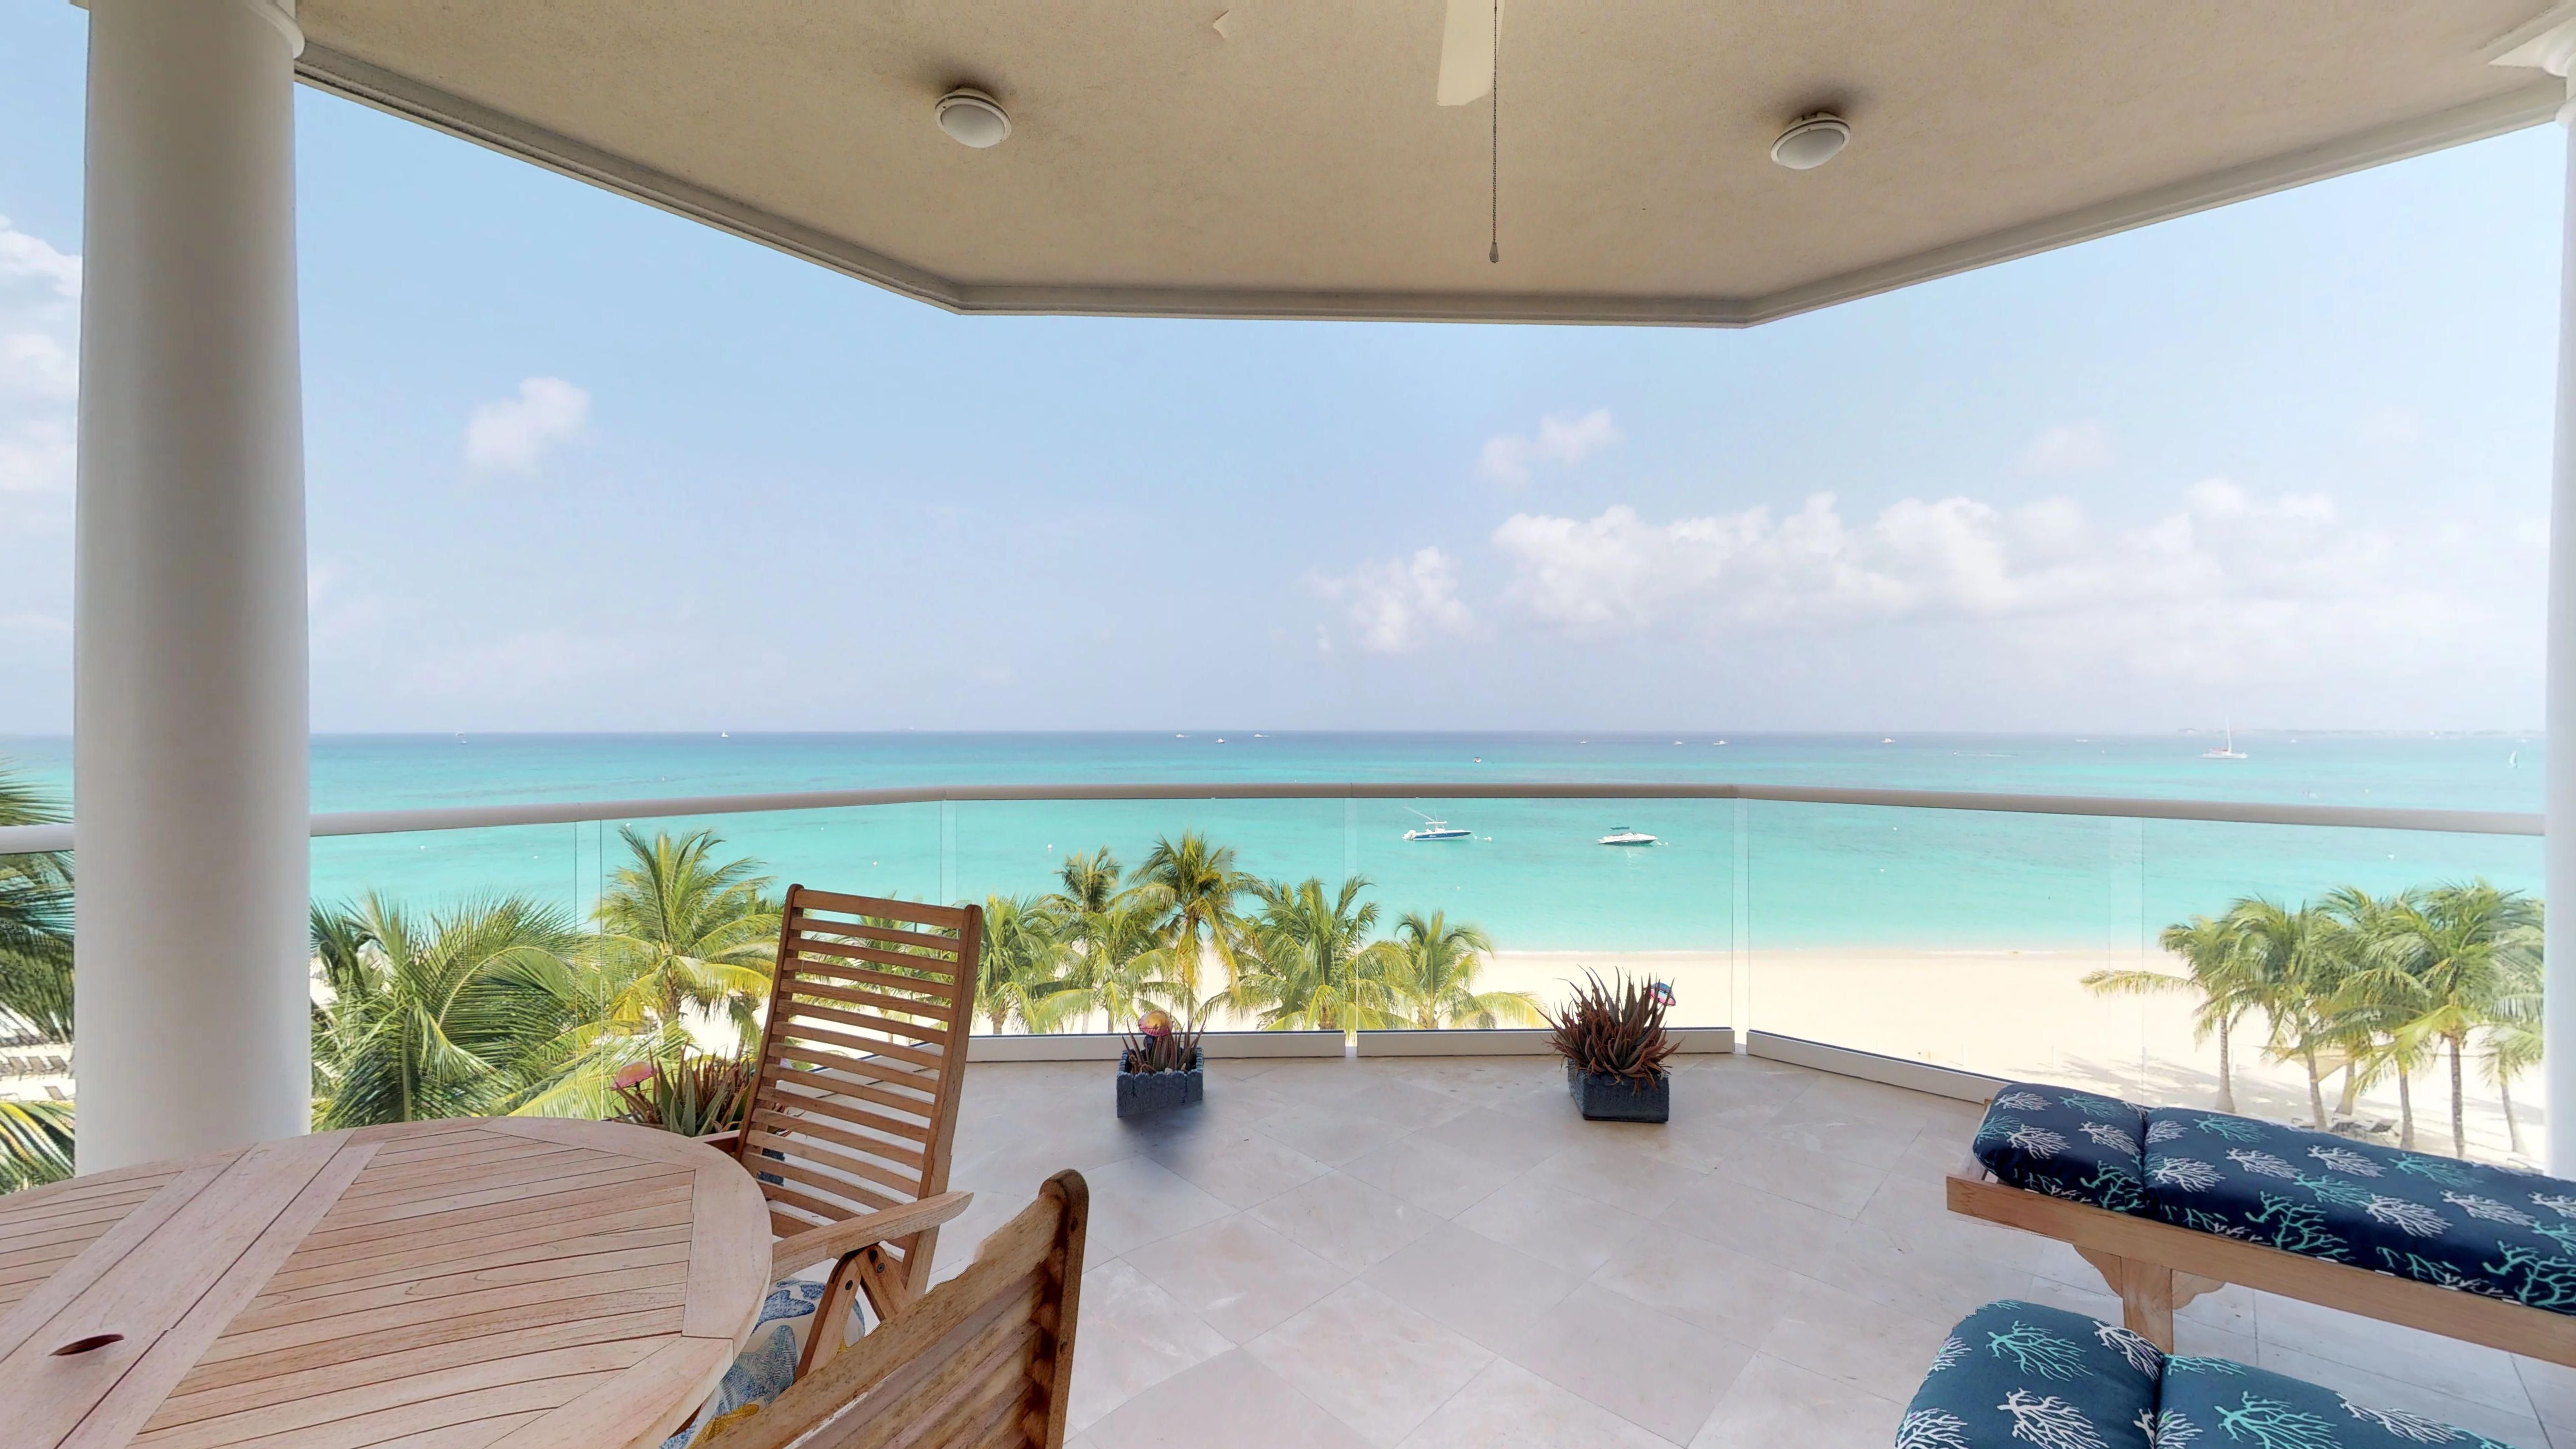 Seven Mile Beach Grand Cayman 19 Water S Edge Virtual Tour By Cayman Islands Sotheby S International Realty Bali House House Tours Grand Cayman